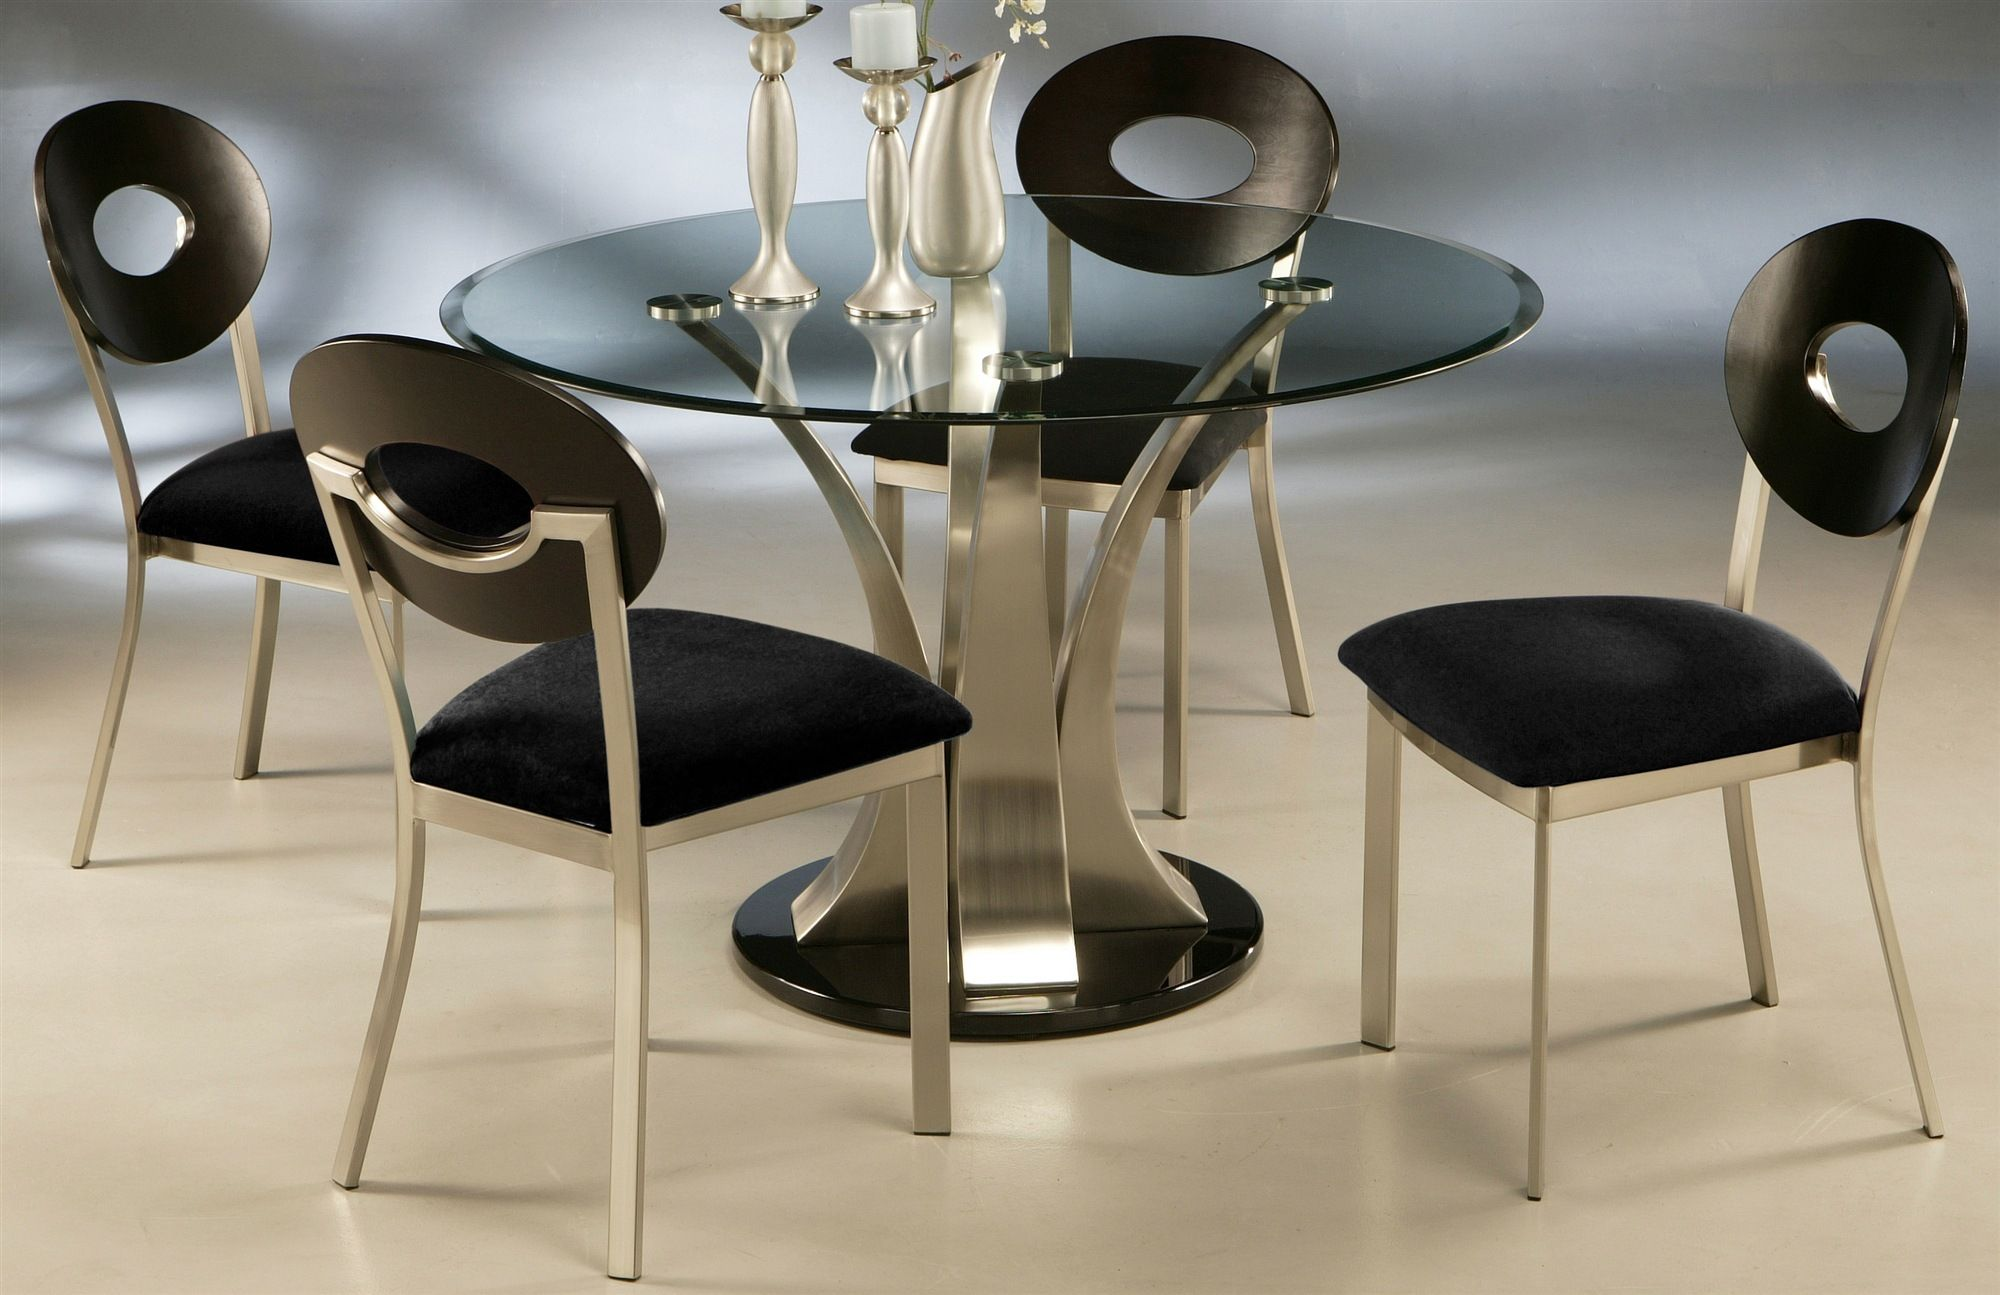 Dining Table With Glass Top In Black Metal Finish